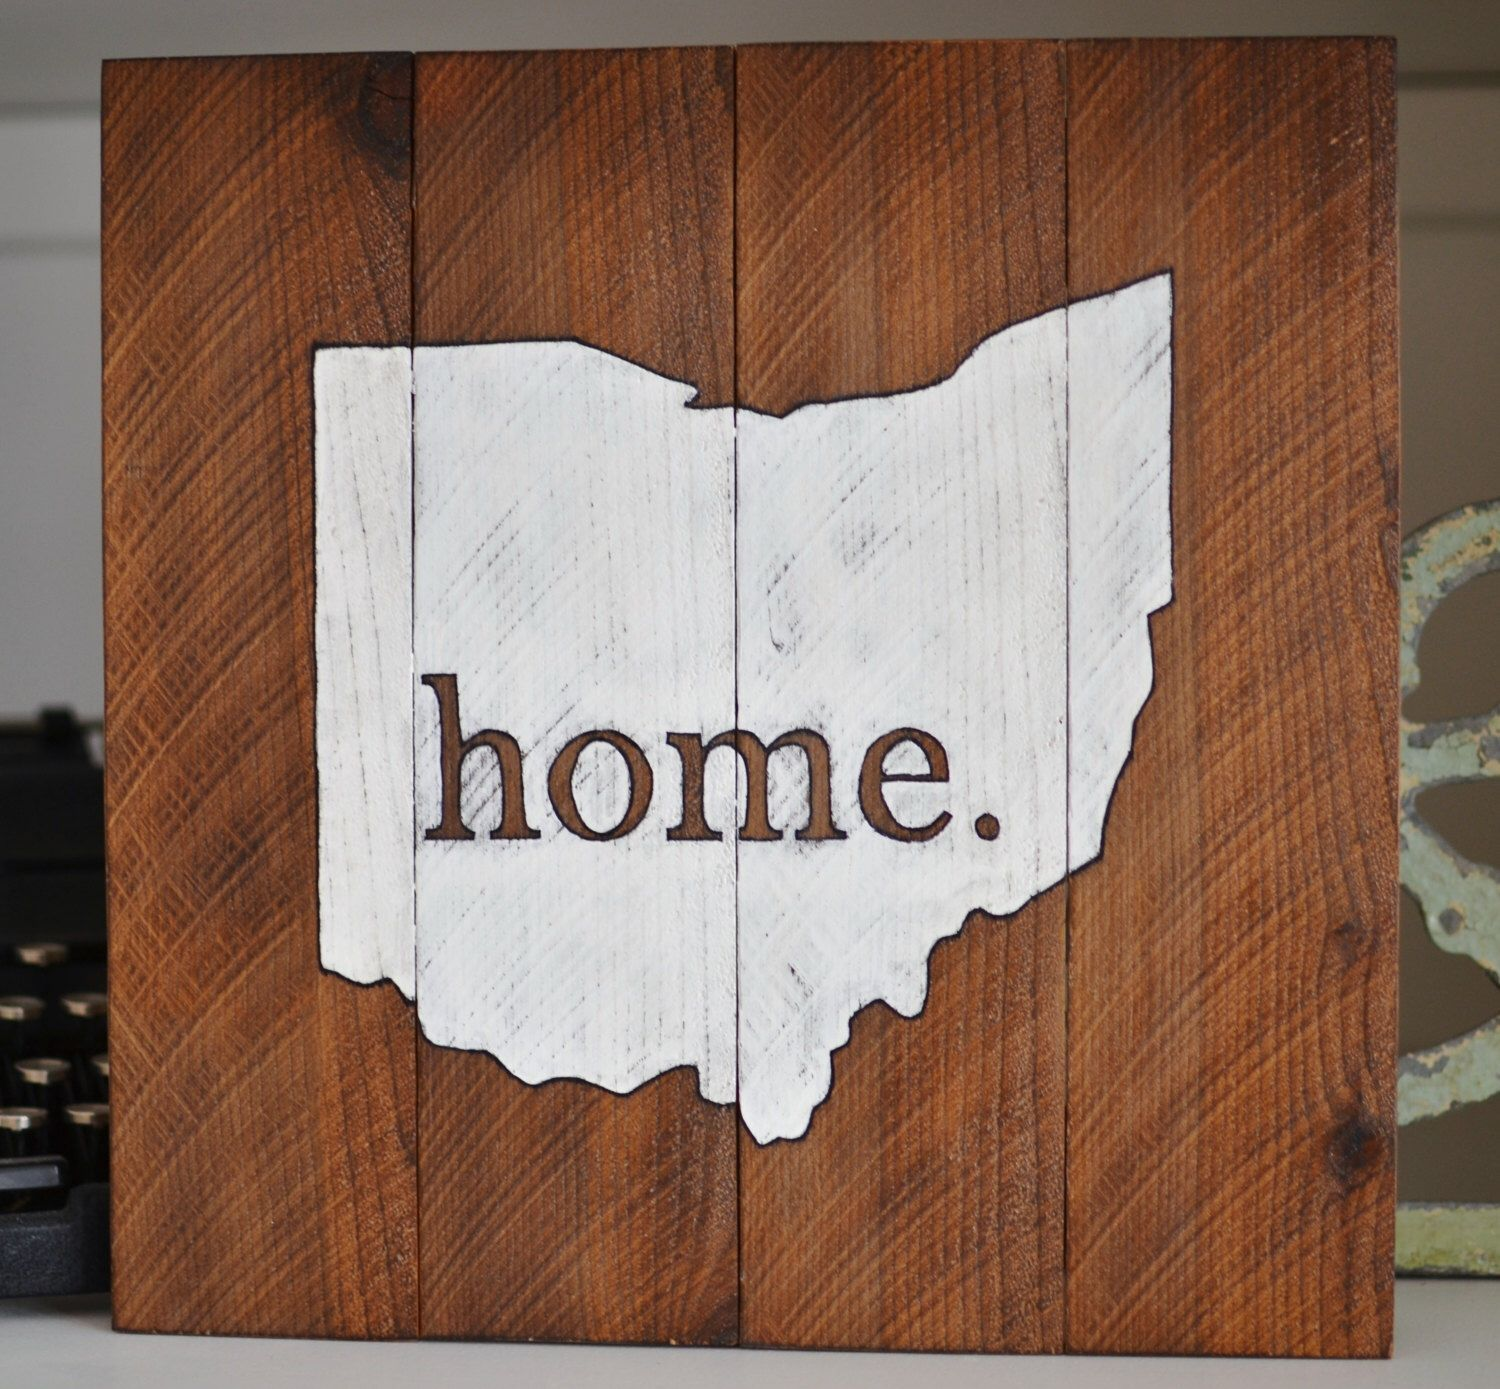 Home Ohio pallet reclaimed wood sign at My Midwest Home on Etsy ...